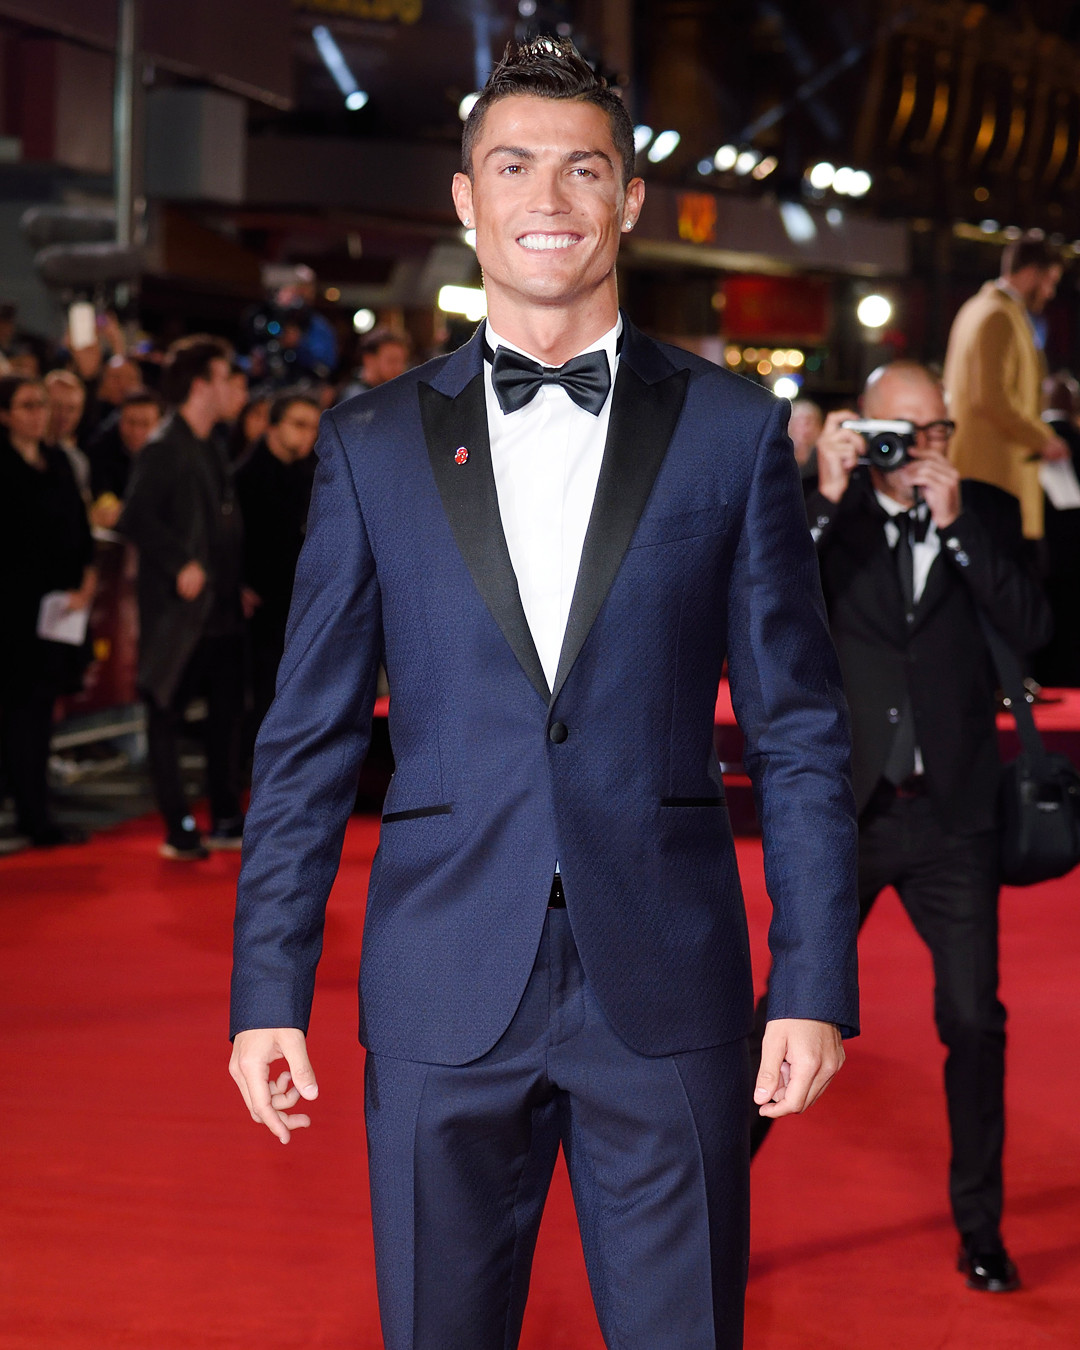 ESC: Stylish Soccer Players, Cristiano Ronaldo, Portugal